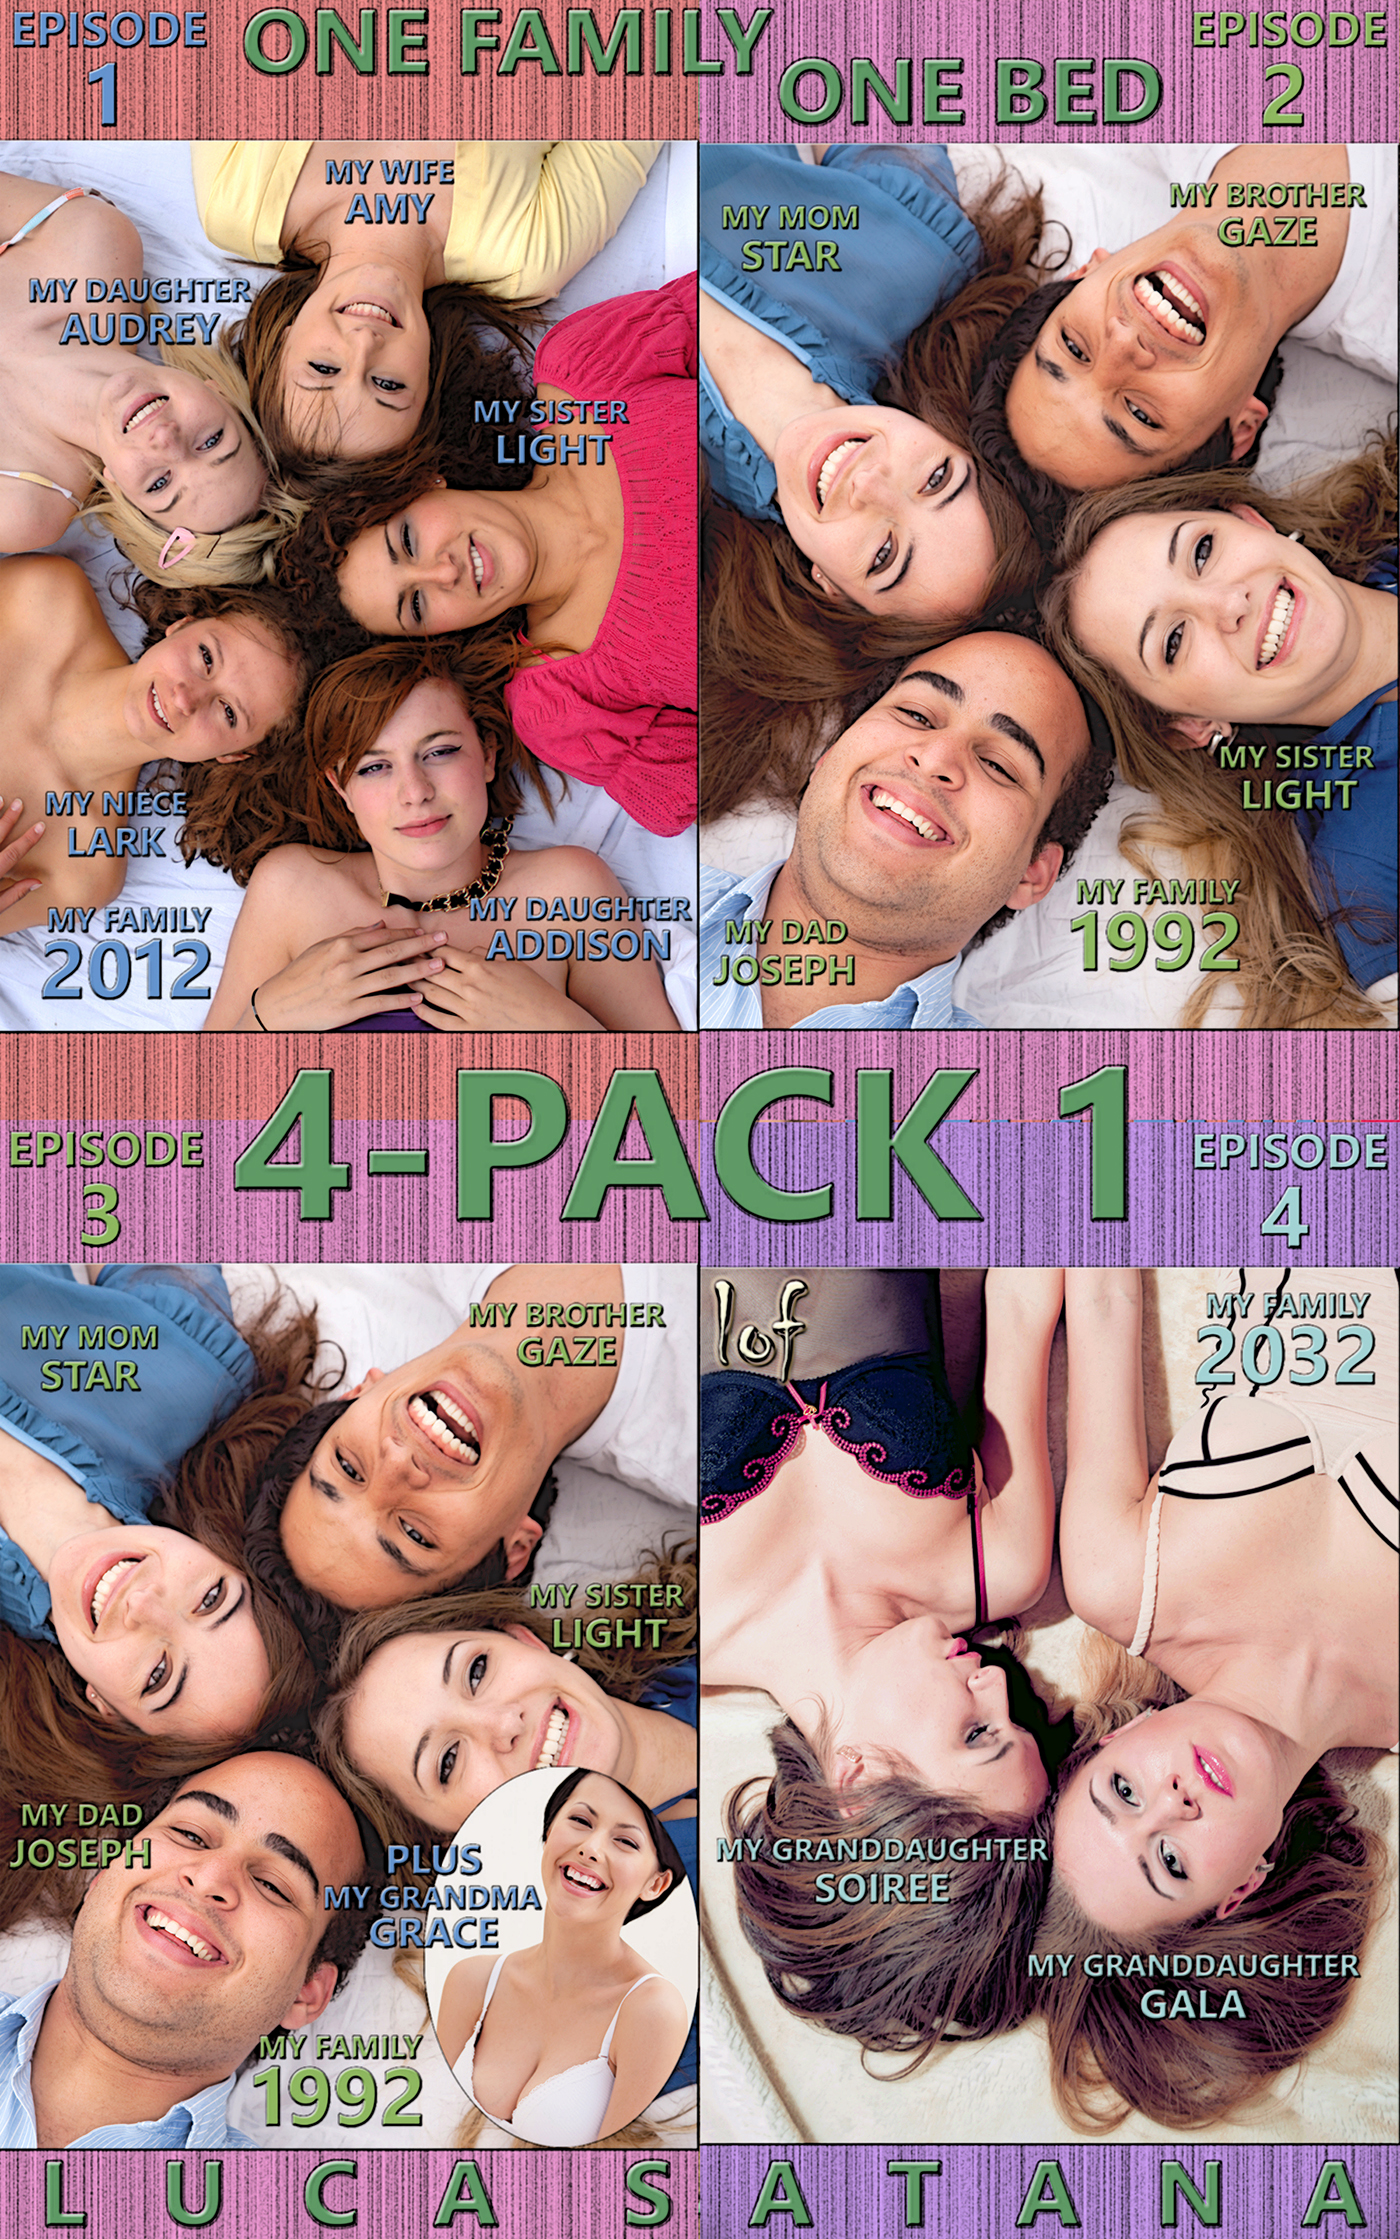 LOF New Release: One Family One Bed: 4-Pack 1 (Episode 1-4)